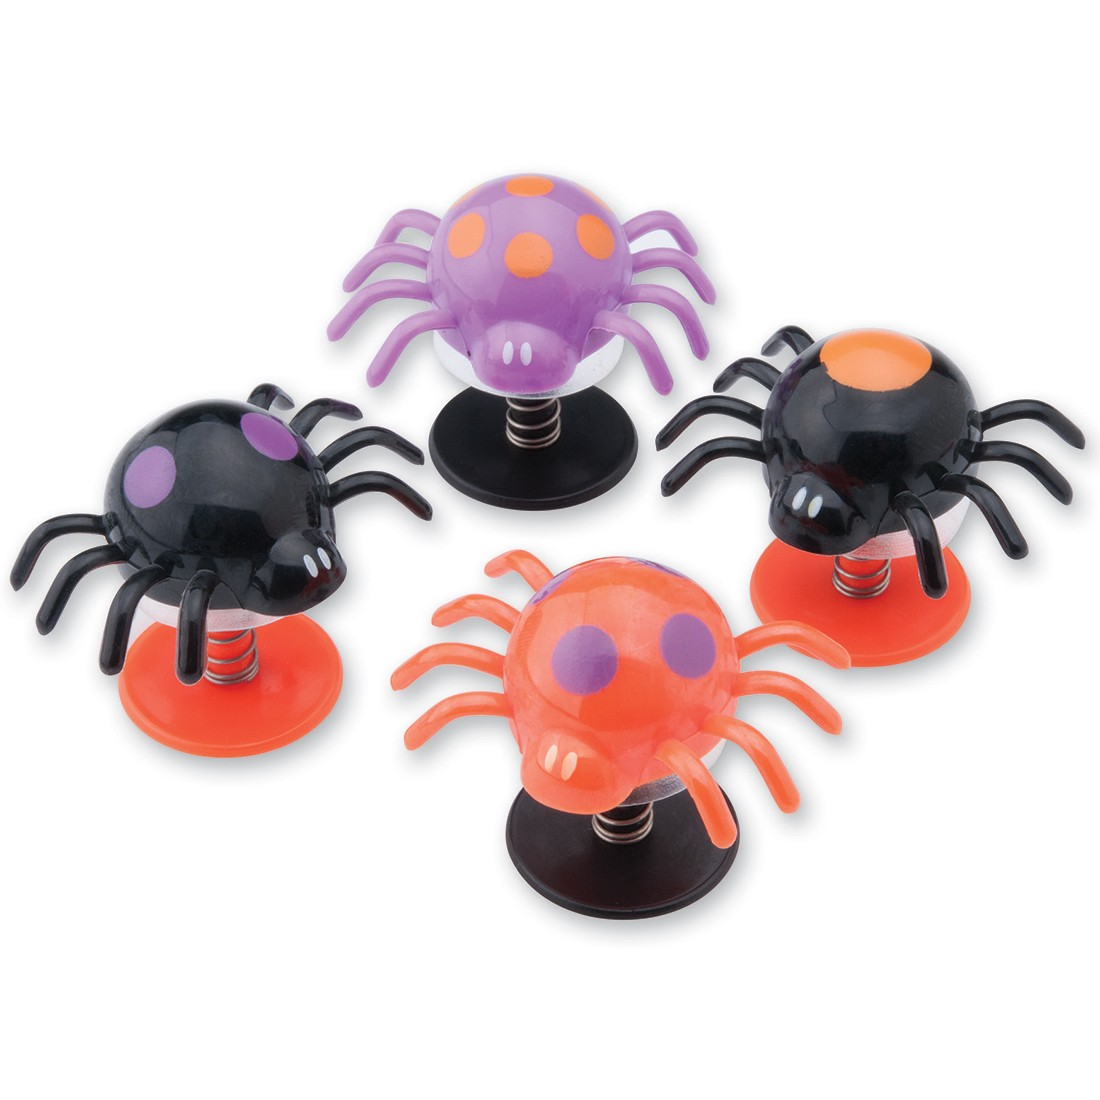 Halloween Jumping Spiders [image]